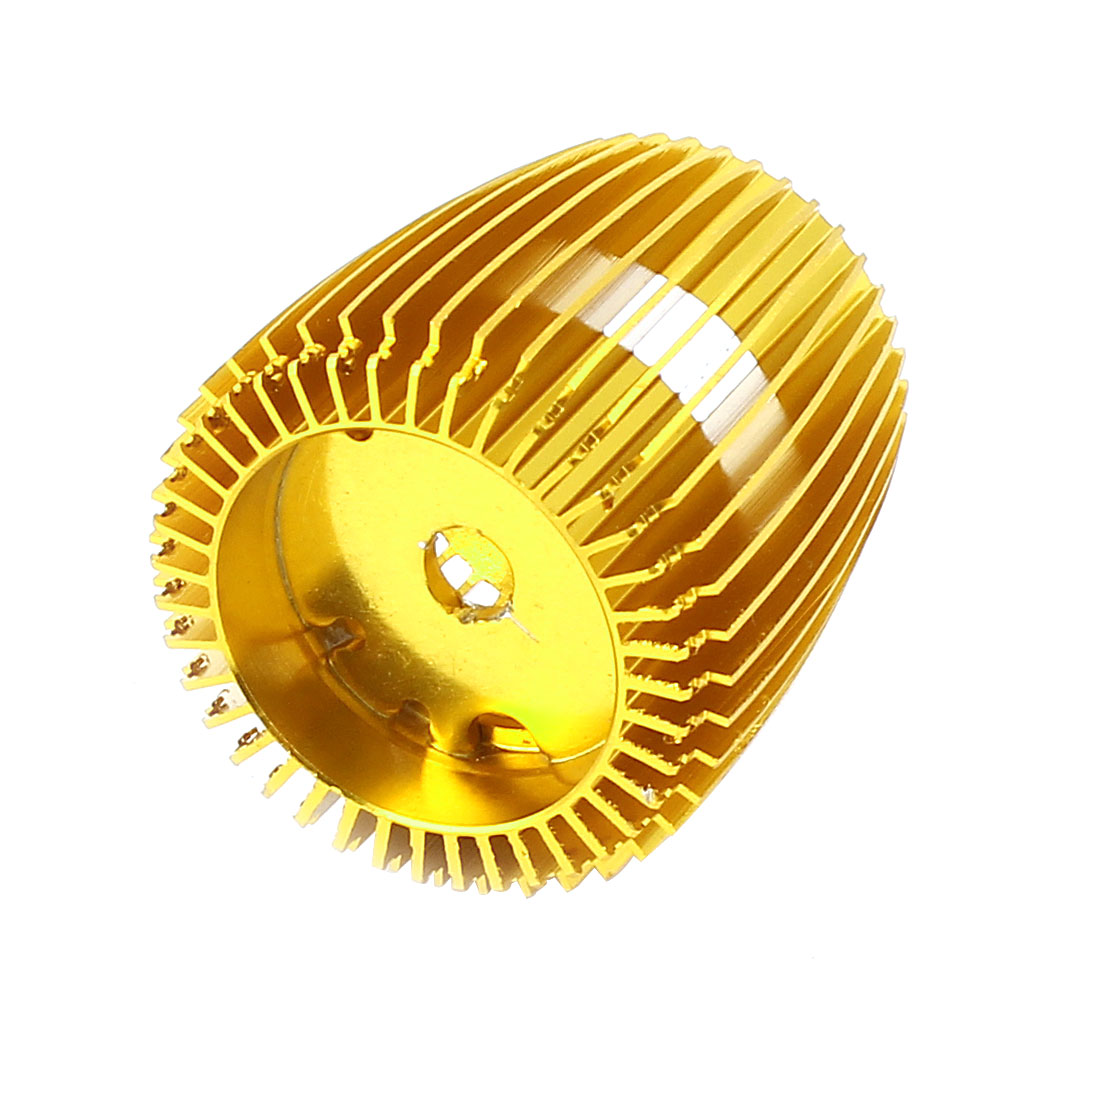 33mm Height LED Bulb Light Lamp Gold Tone Aluminum Heat Sink